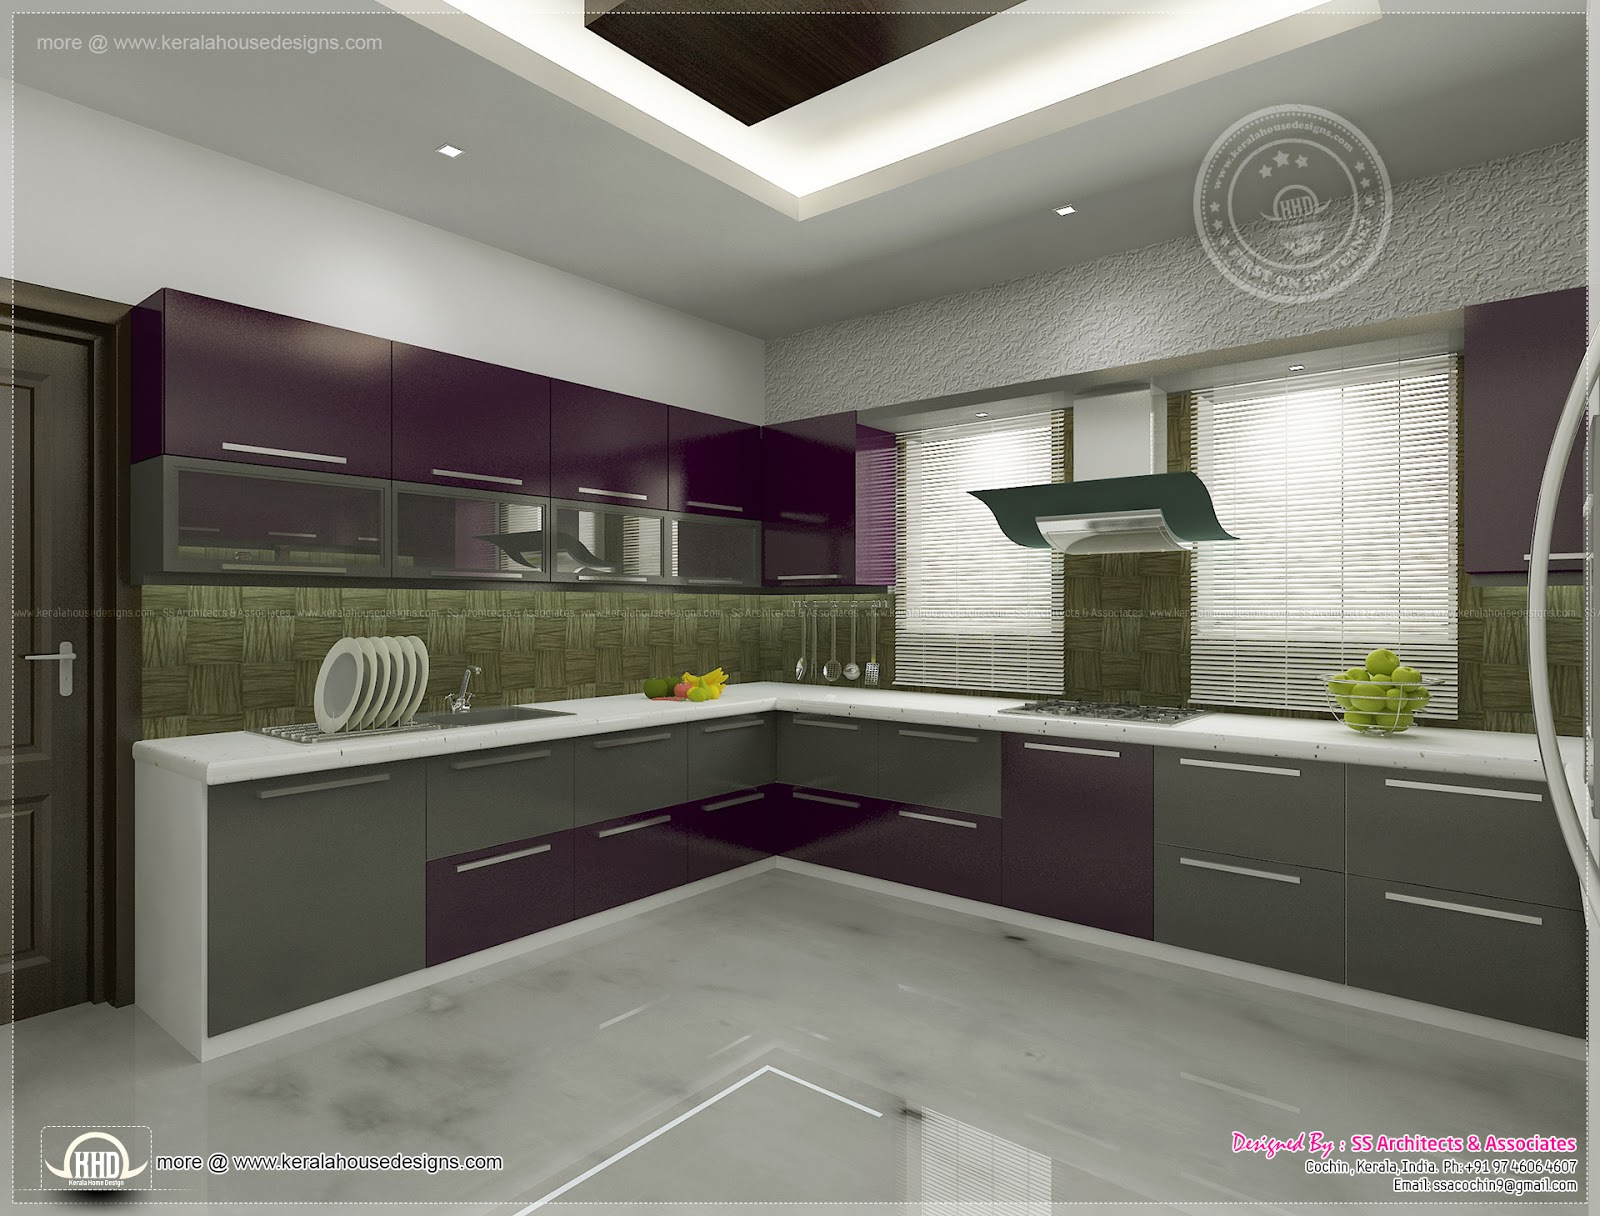 Kitchen interior views by ss architects cochin kerala for Interior designs for homes pictures